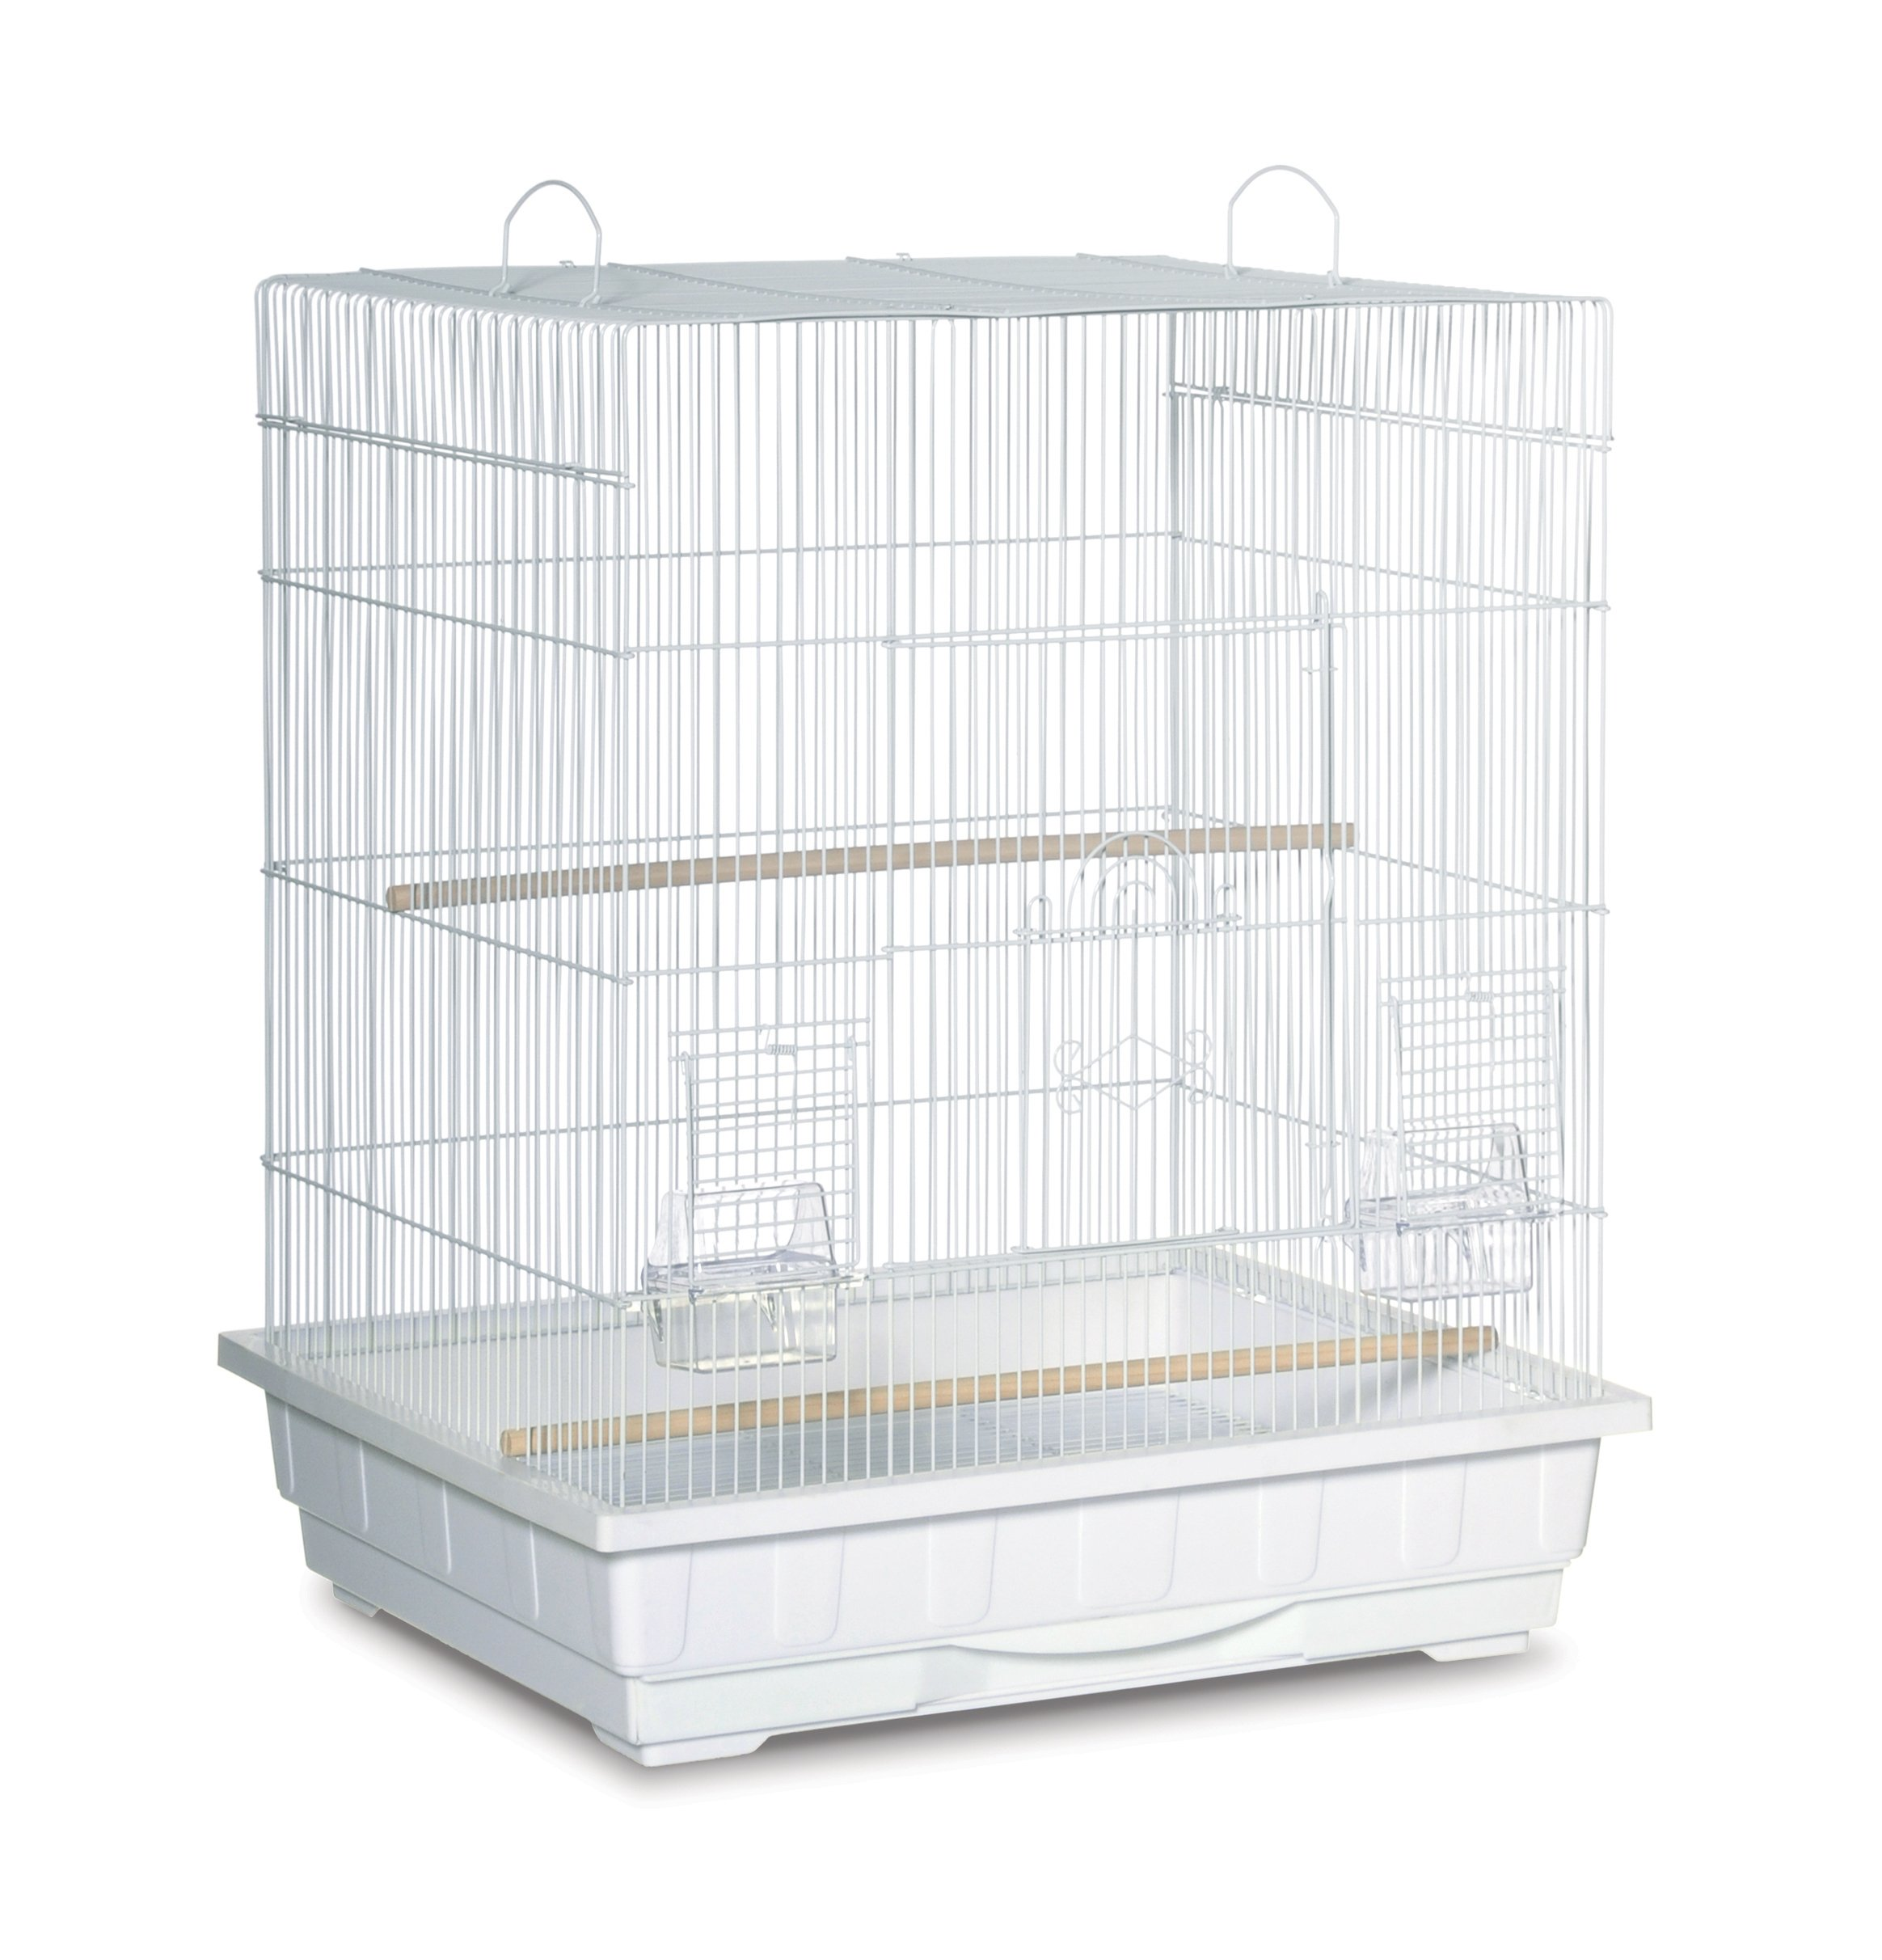 Prevue Pet Products Square Top Parakeet Cage, White